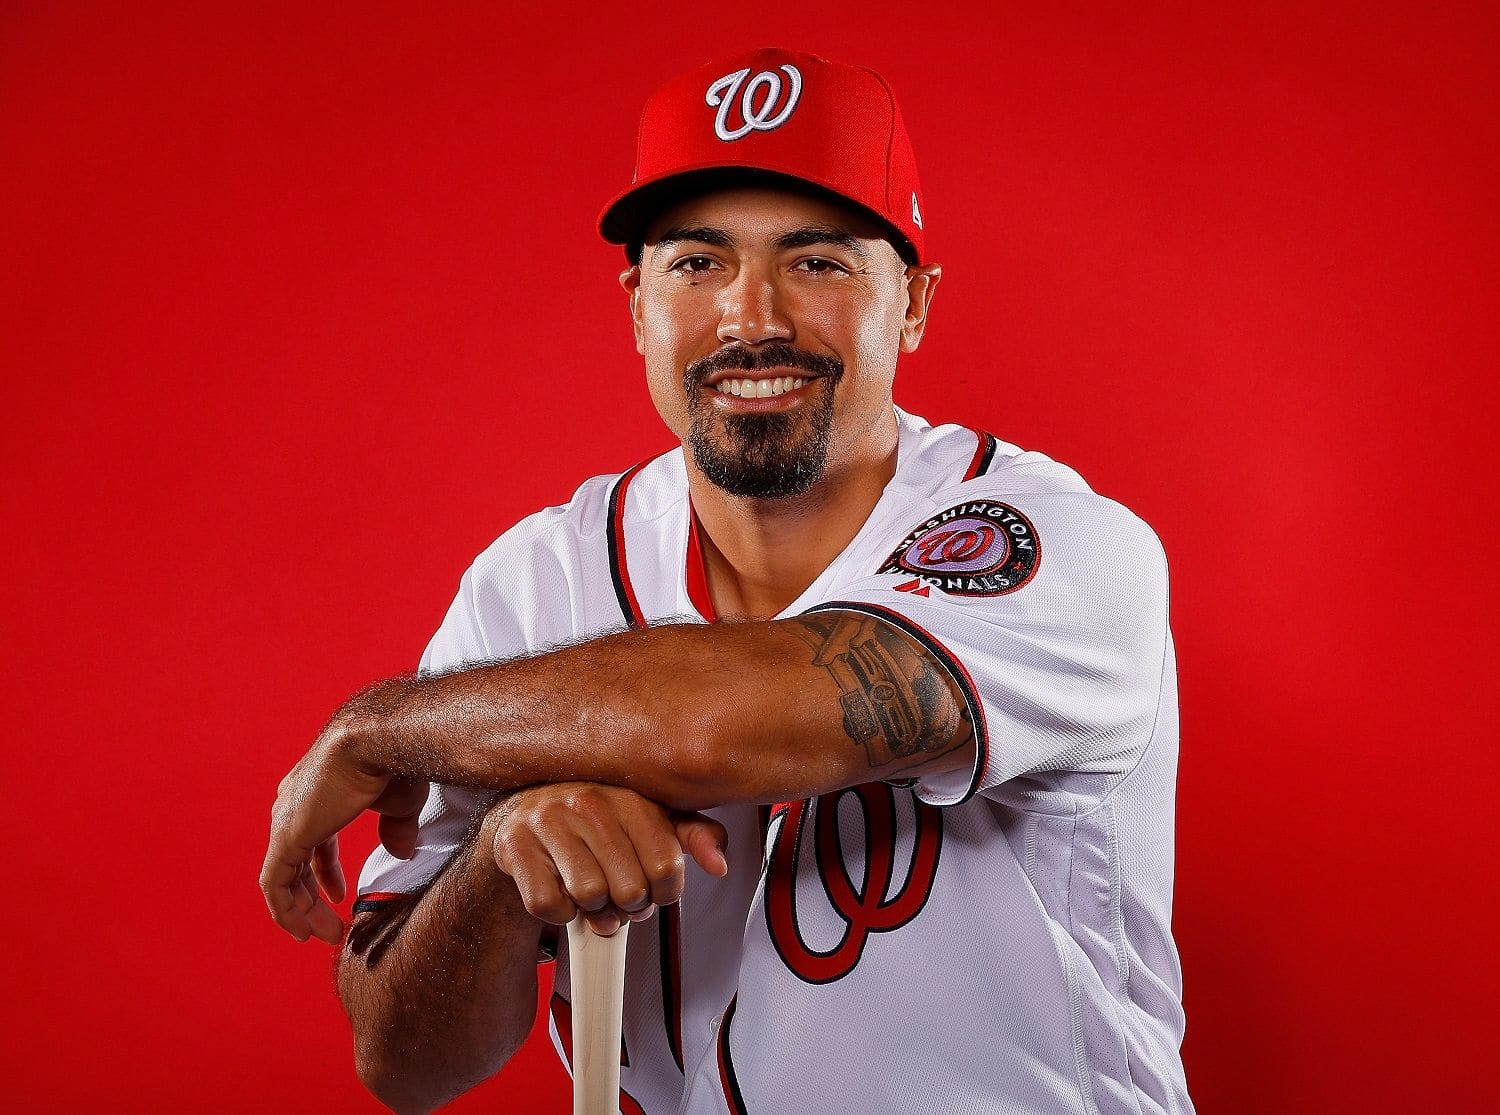 WEST PALM BEACH, FL - FEBRUARY 22:  Anthony Rendon #6 of the Washington Nationals poses for a photo during photo days at The Ballpark of the Palm Beaches on February 22, 2018 in West Palm Beach, Florida.  (Photo by Kevin C. Cox/Getty Images)